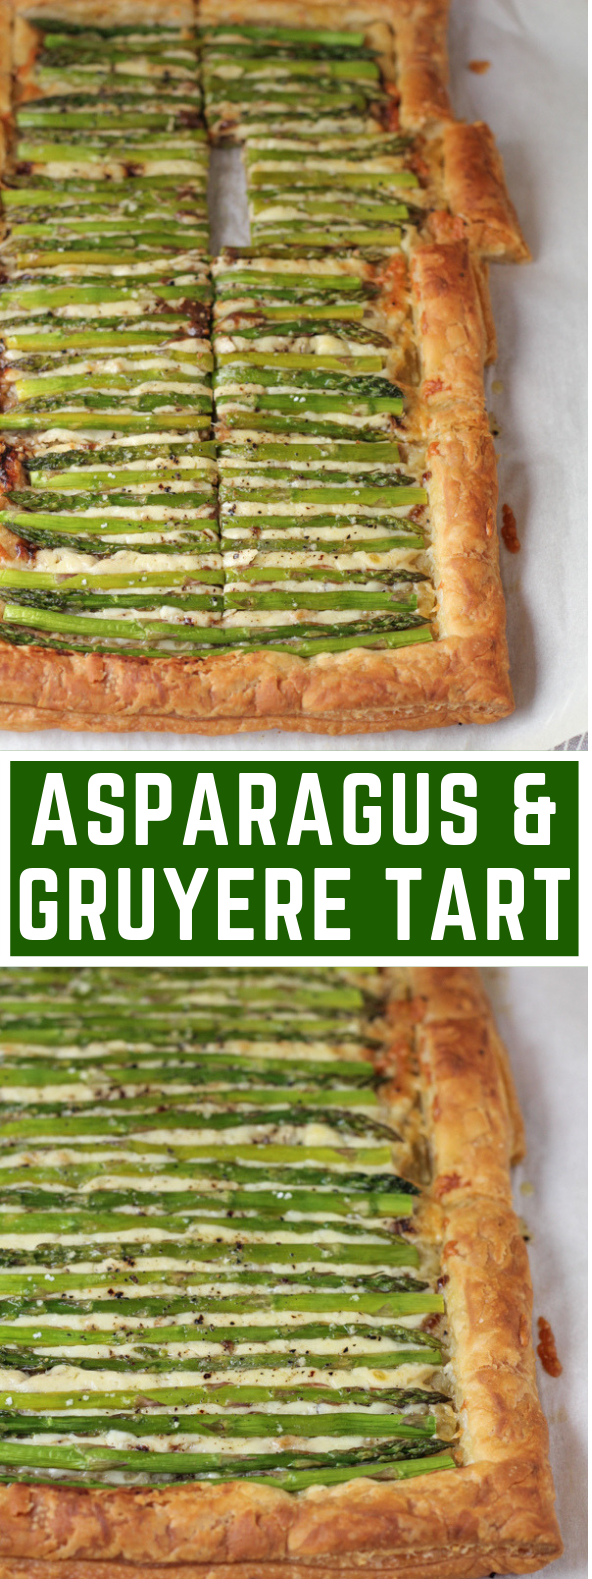 ASPARAGUS GRUYERE TART – FEATURED ON THE TODAY SHOW #appetizer #weeknightmeal